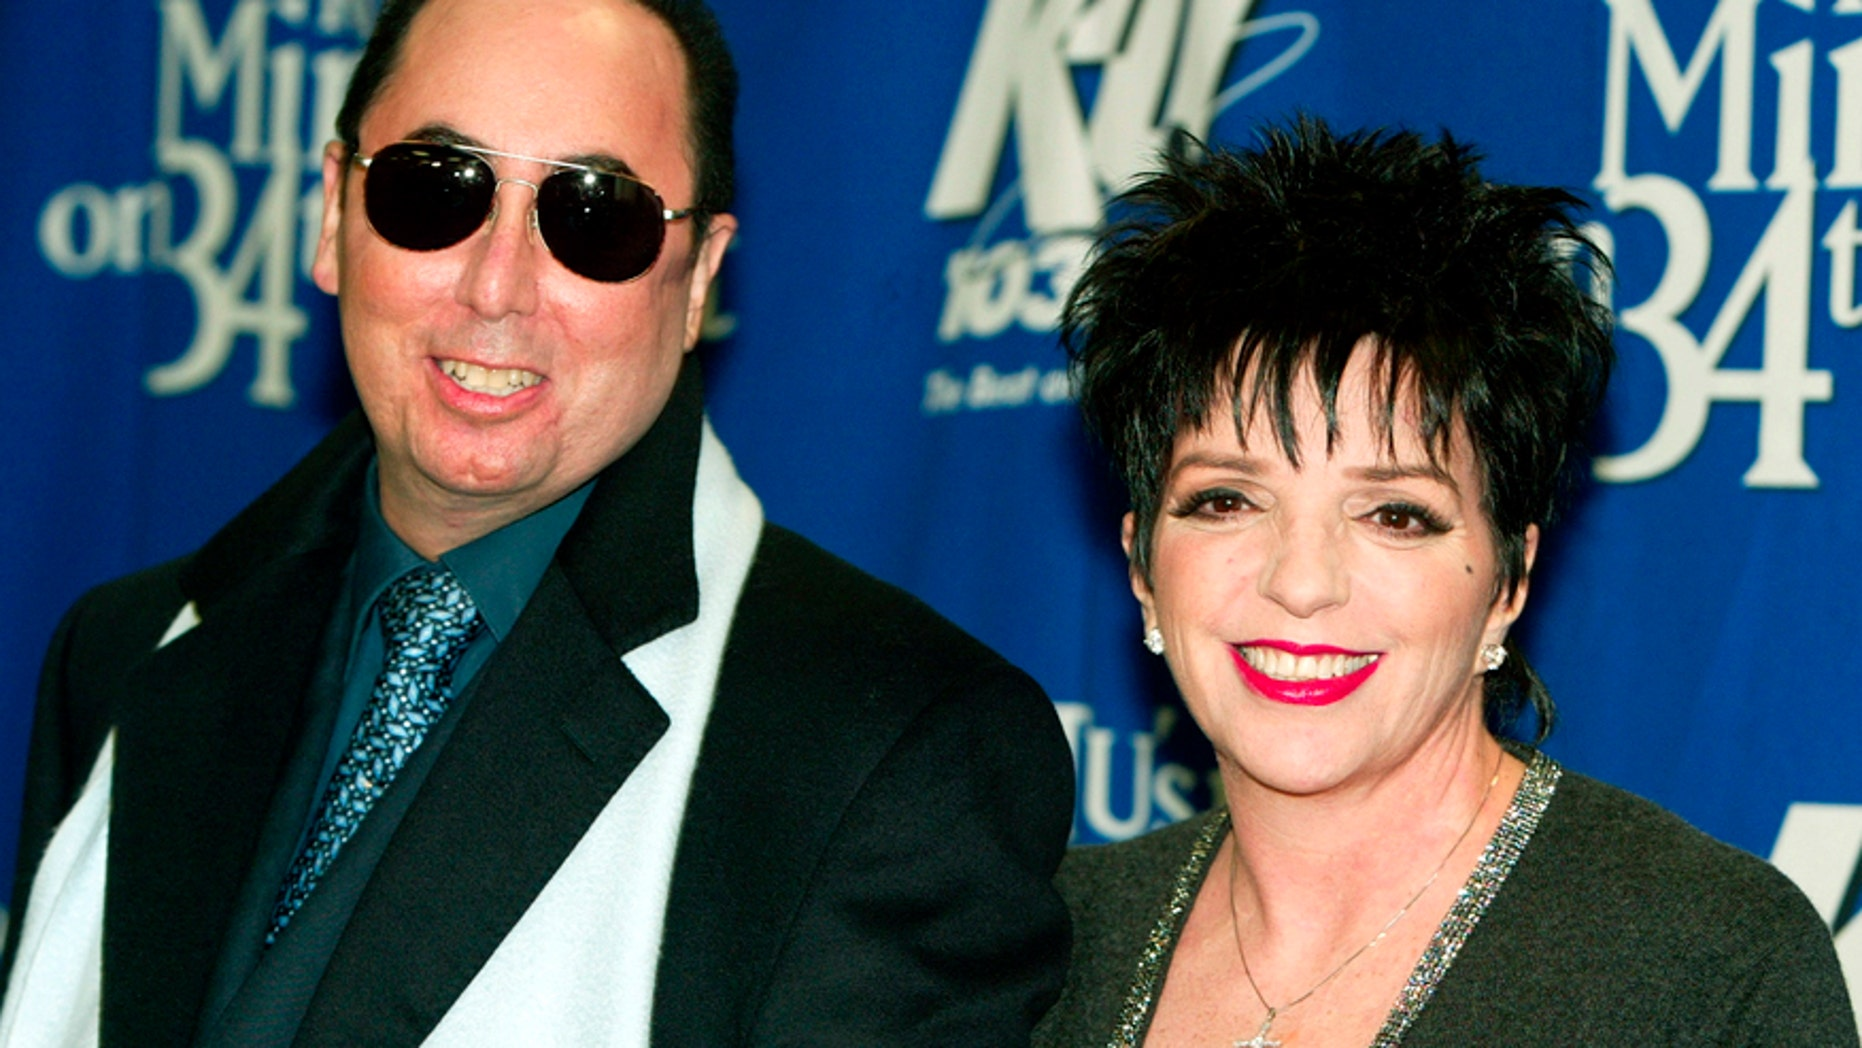 """Singer Liza Minnelli and her husband David Gest pose for photographers backstage of the """"Miracle on 34th Street"""" concert hosted by radio station WKTU in New York City, December 18, 2002."""